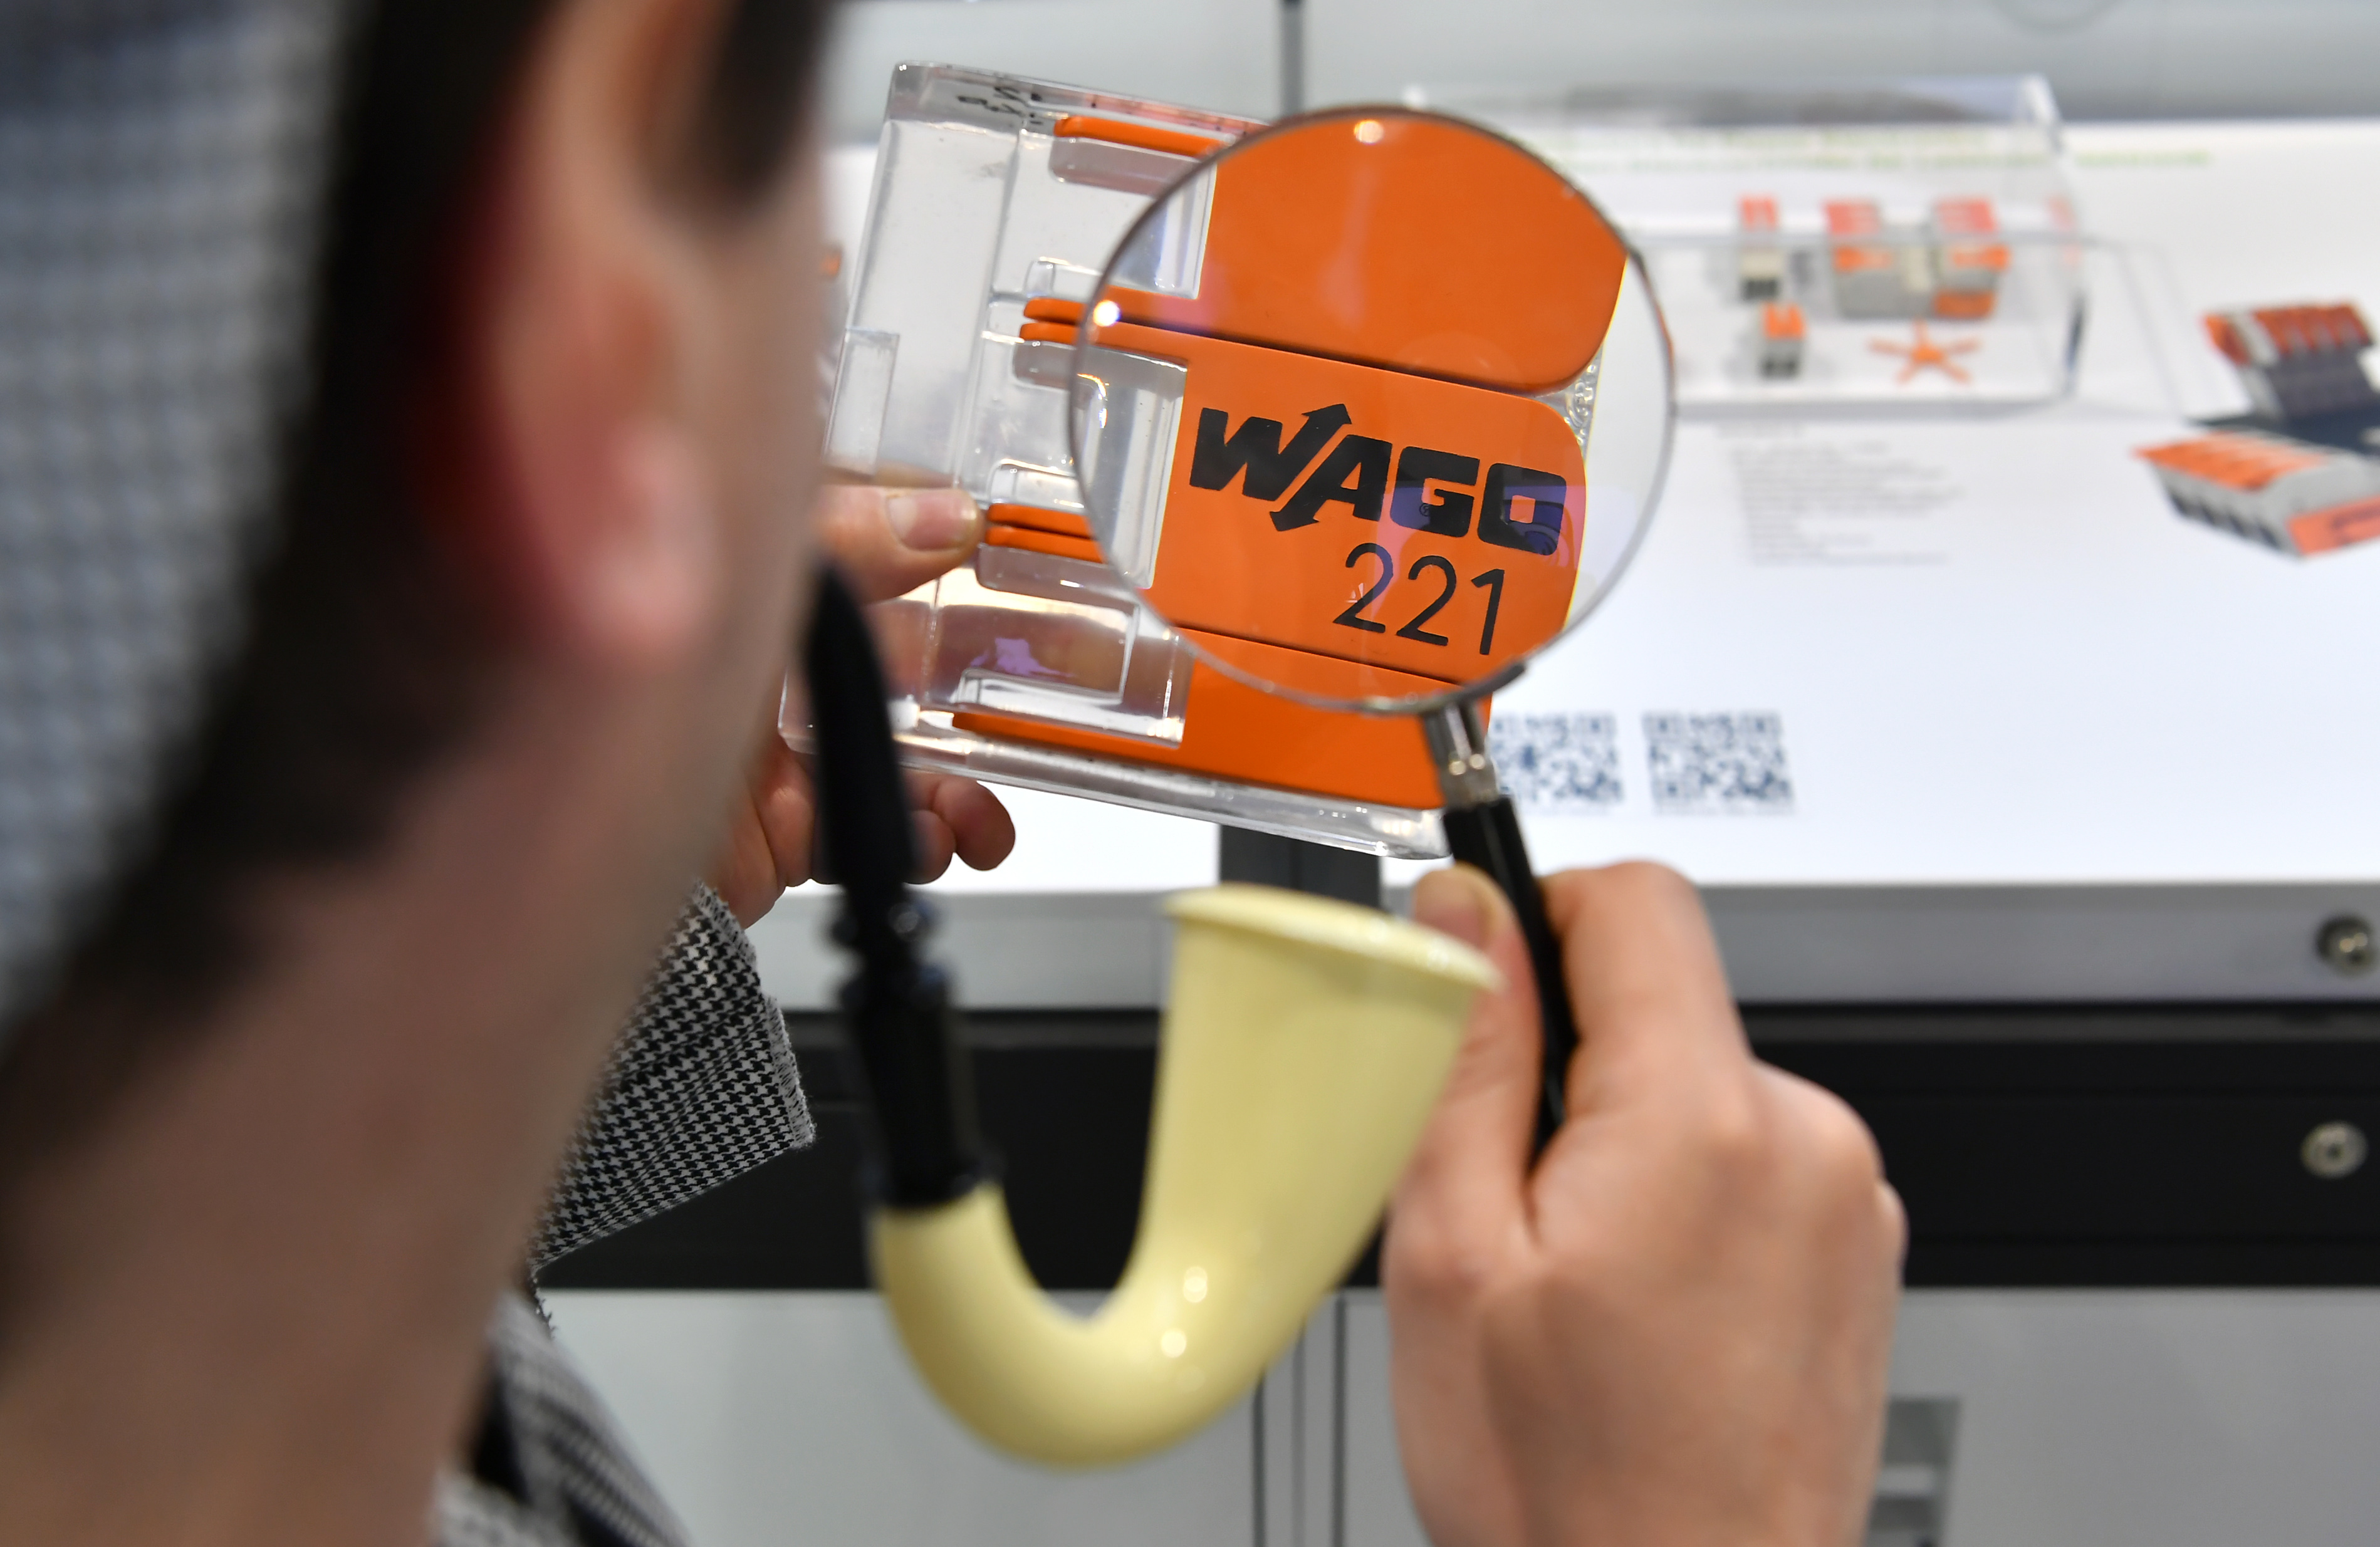 Join the hunt for clues at Elex Coventry and win £500 of WAGO products